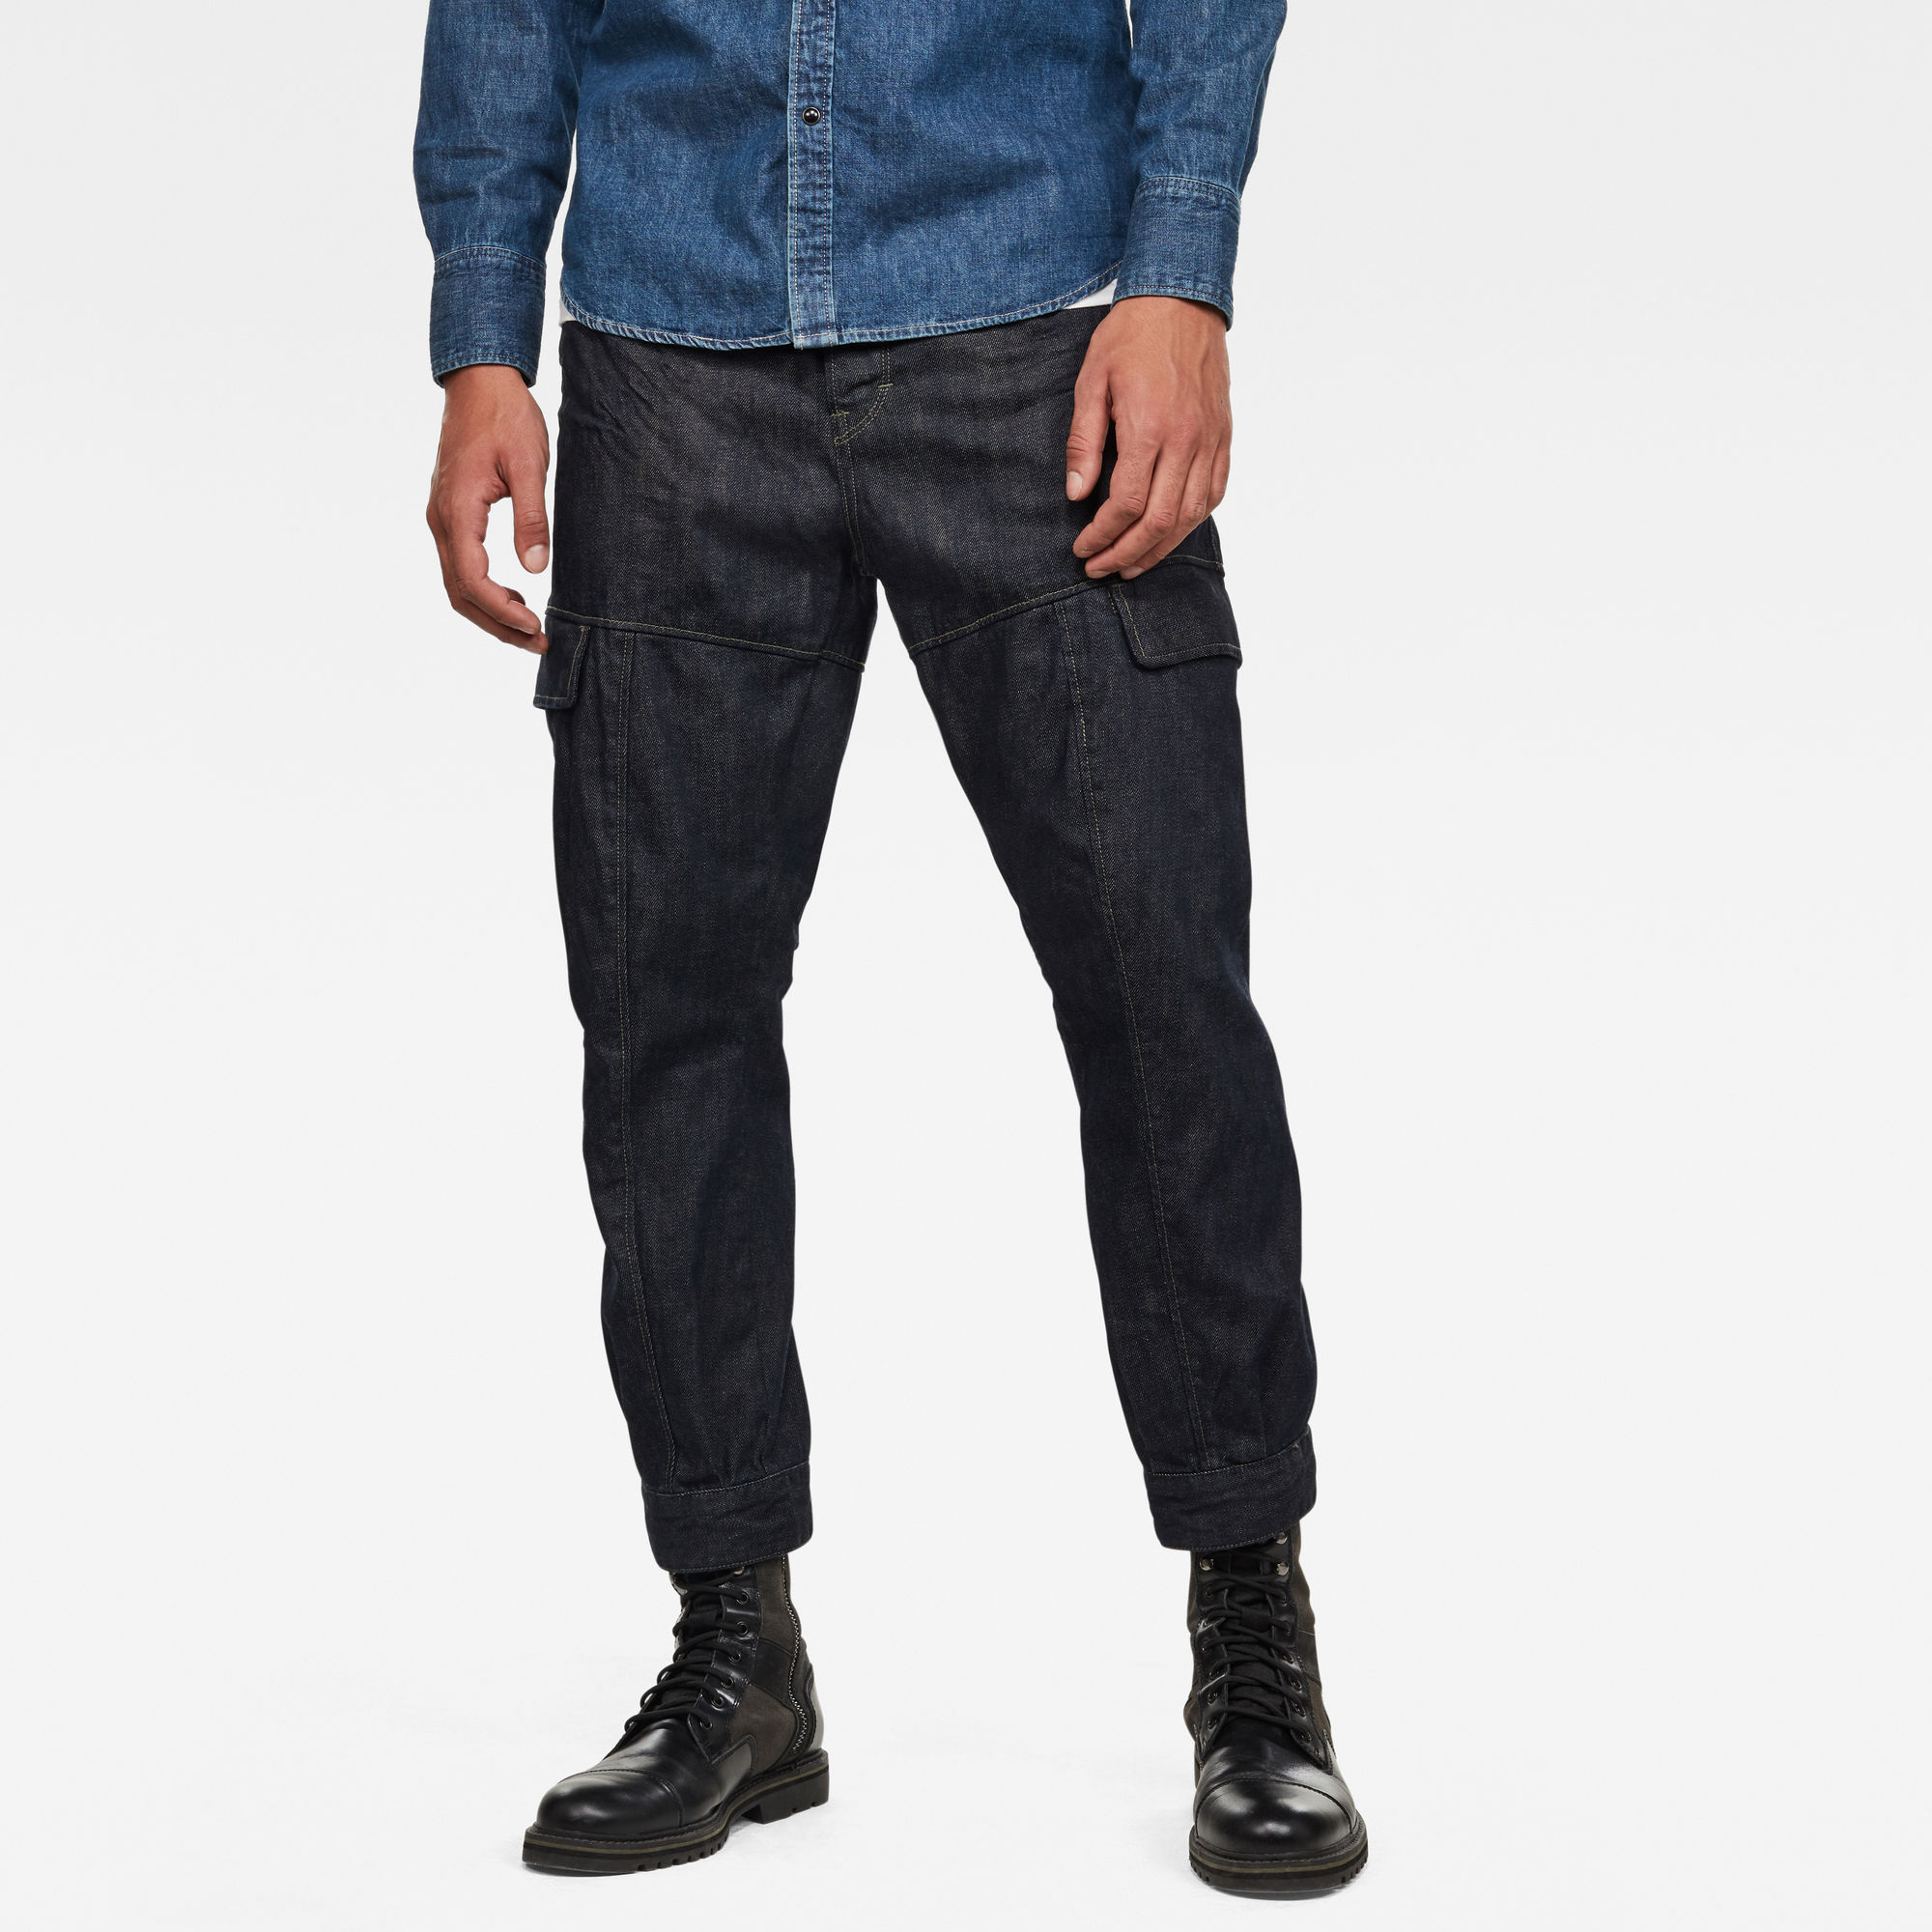 G-Star RAW Heren GSRR Hito Relaxed Tapered Broek Donkerblauw